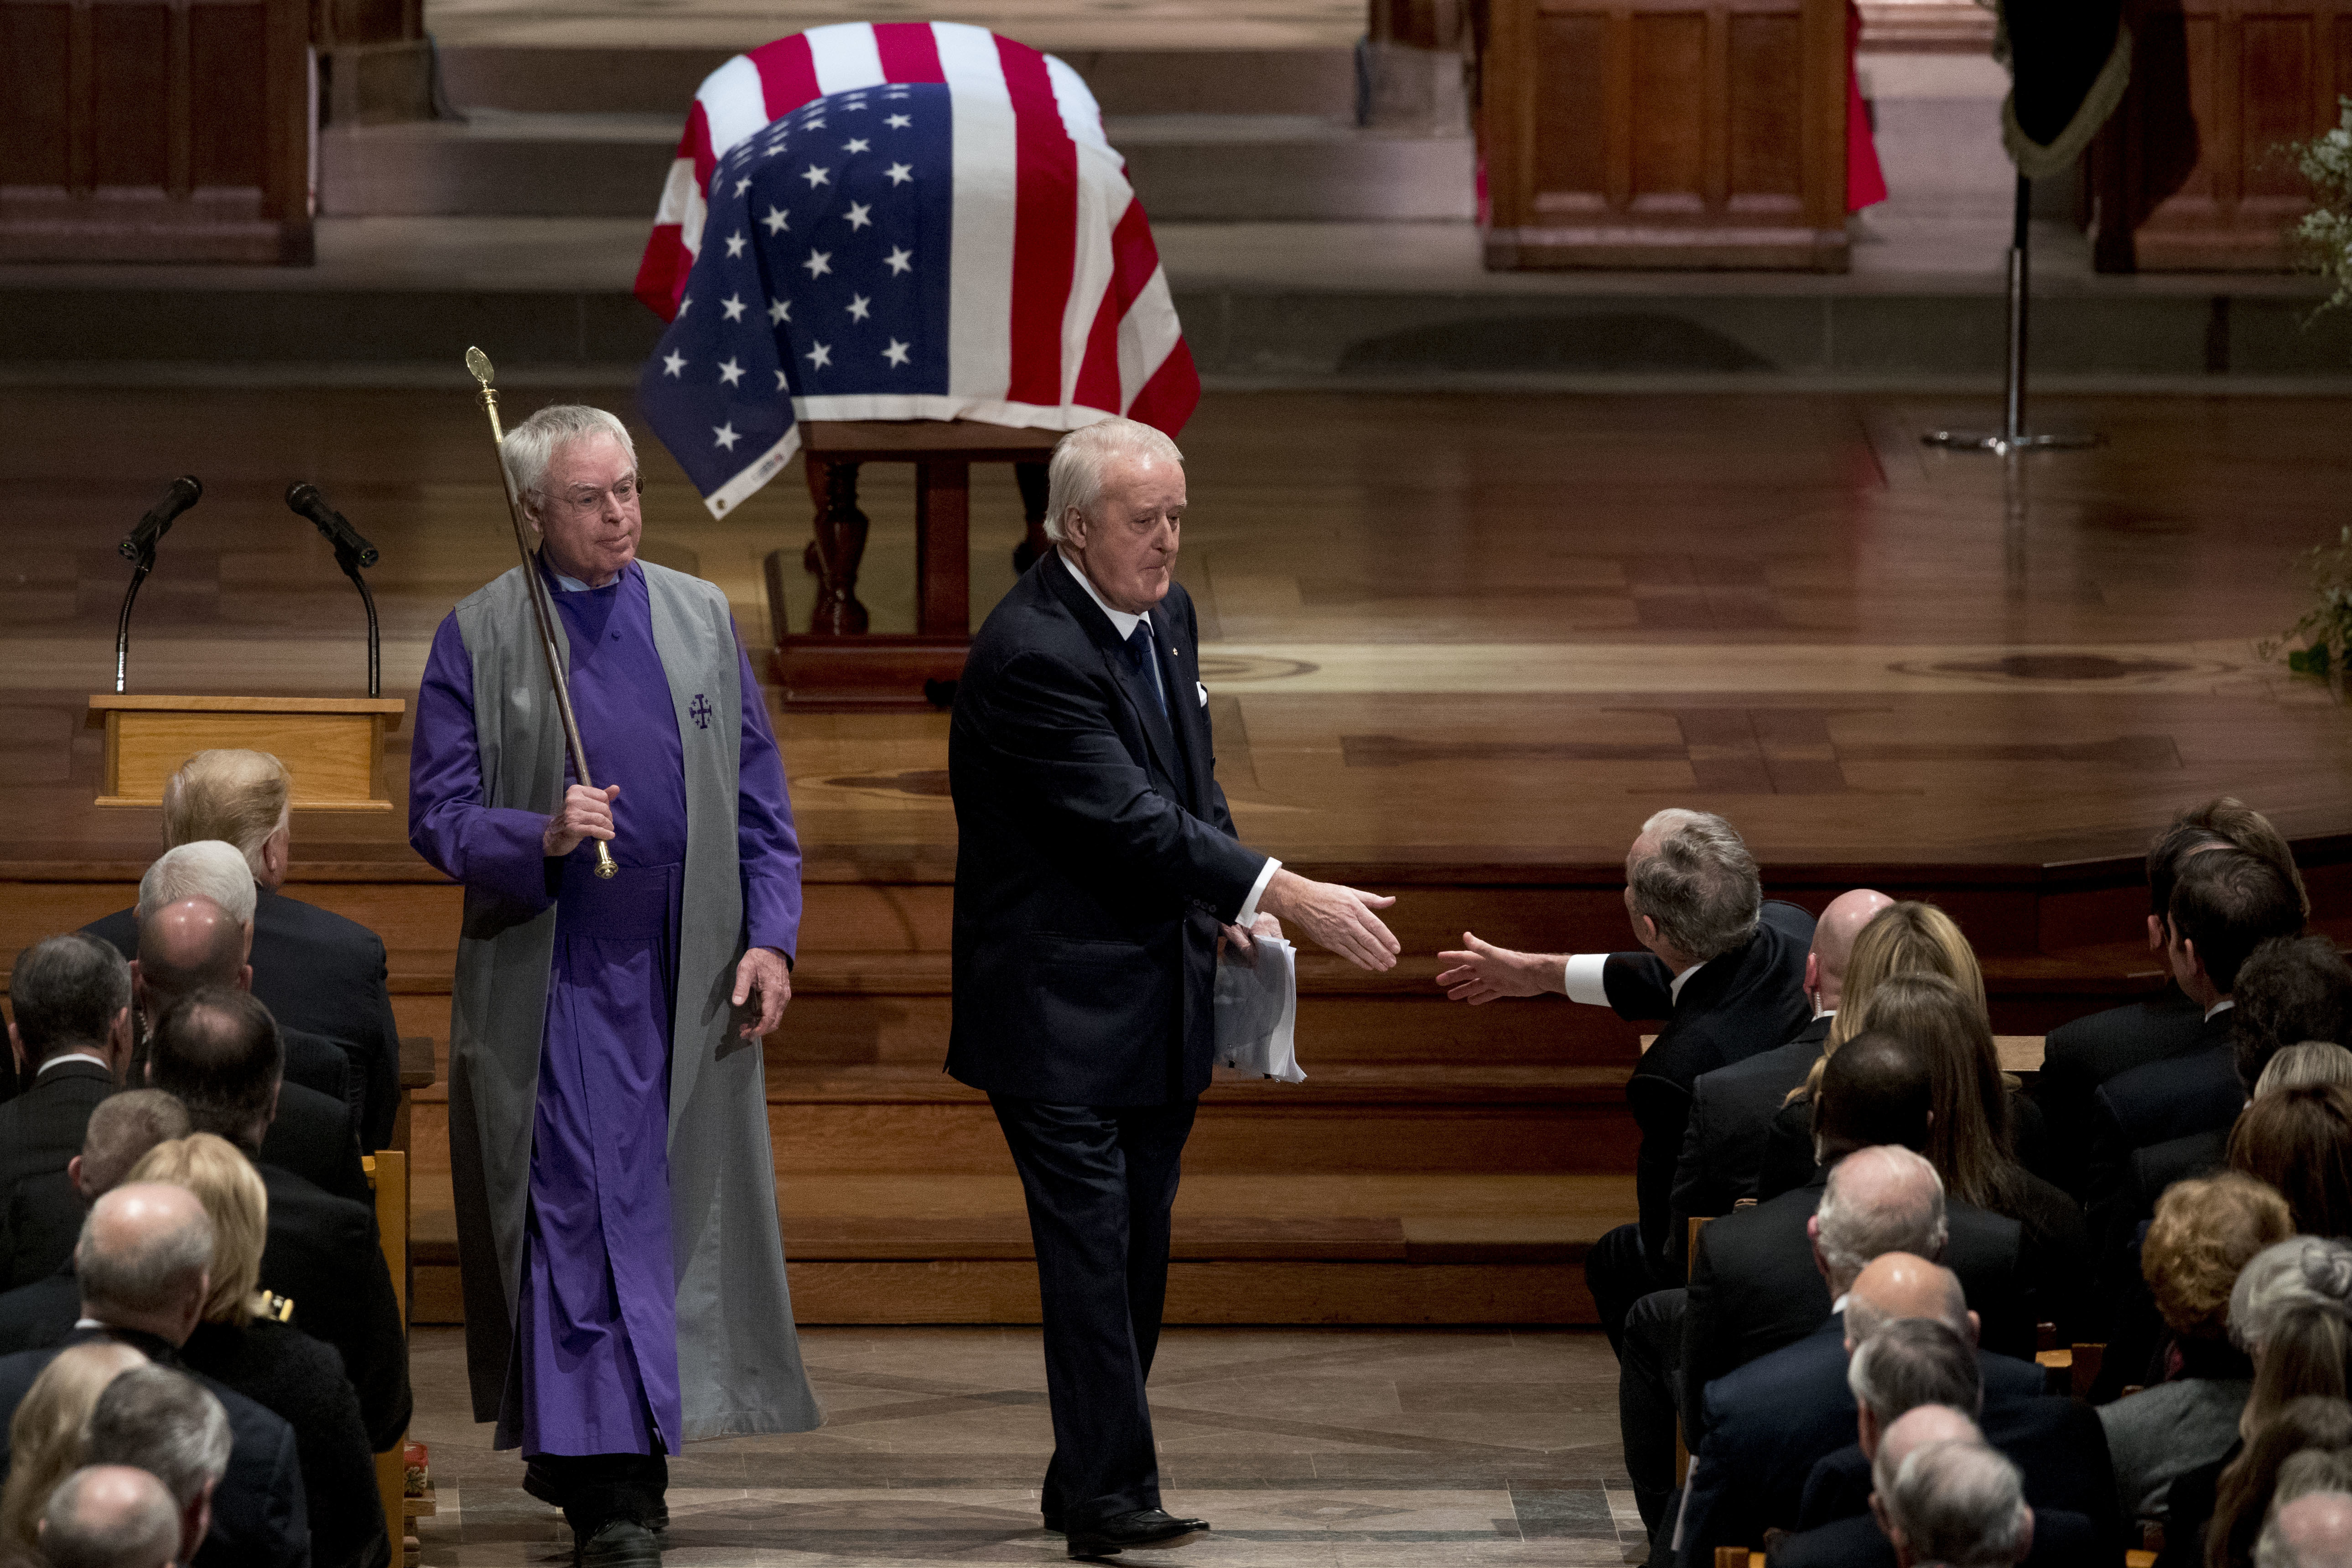 Former Canadian Prime Minister Brian Mulroney, center, shakes hands with former President George W. Bush, right, after speaking during the State Funeral for former President George H.W. Bush at the National Cathedral, Wednesday, Dec. 5, 2018, in Washington. (AP Photo/Andrew Harnik, Pool)